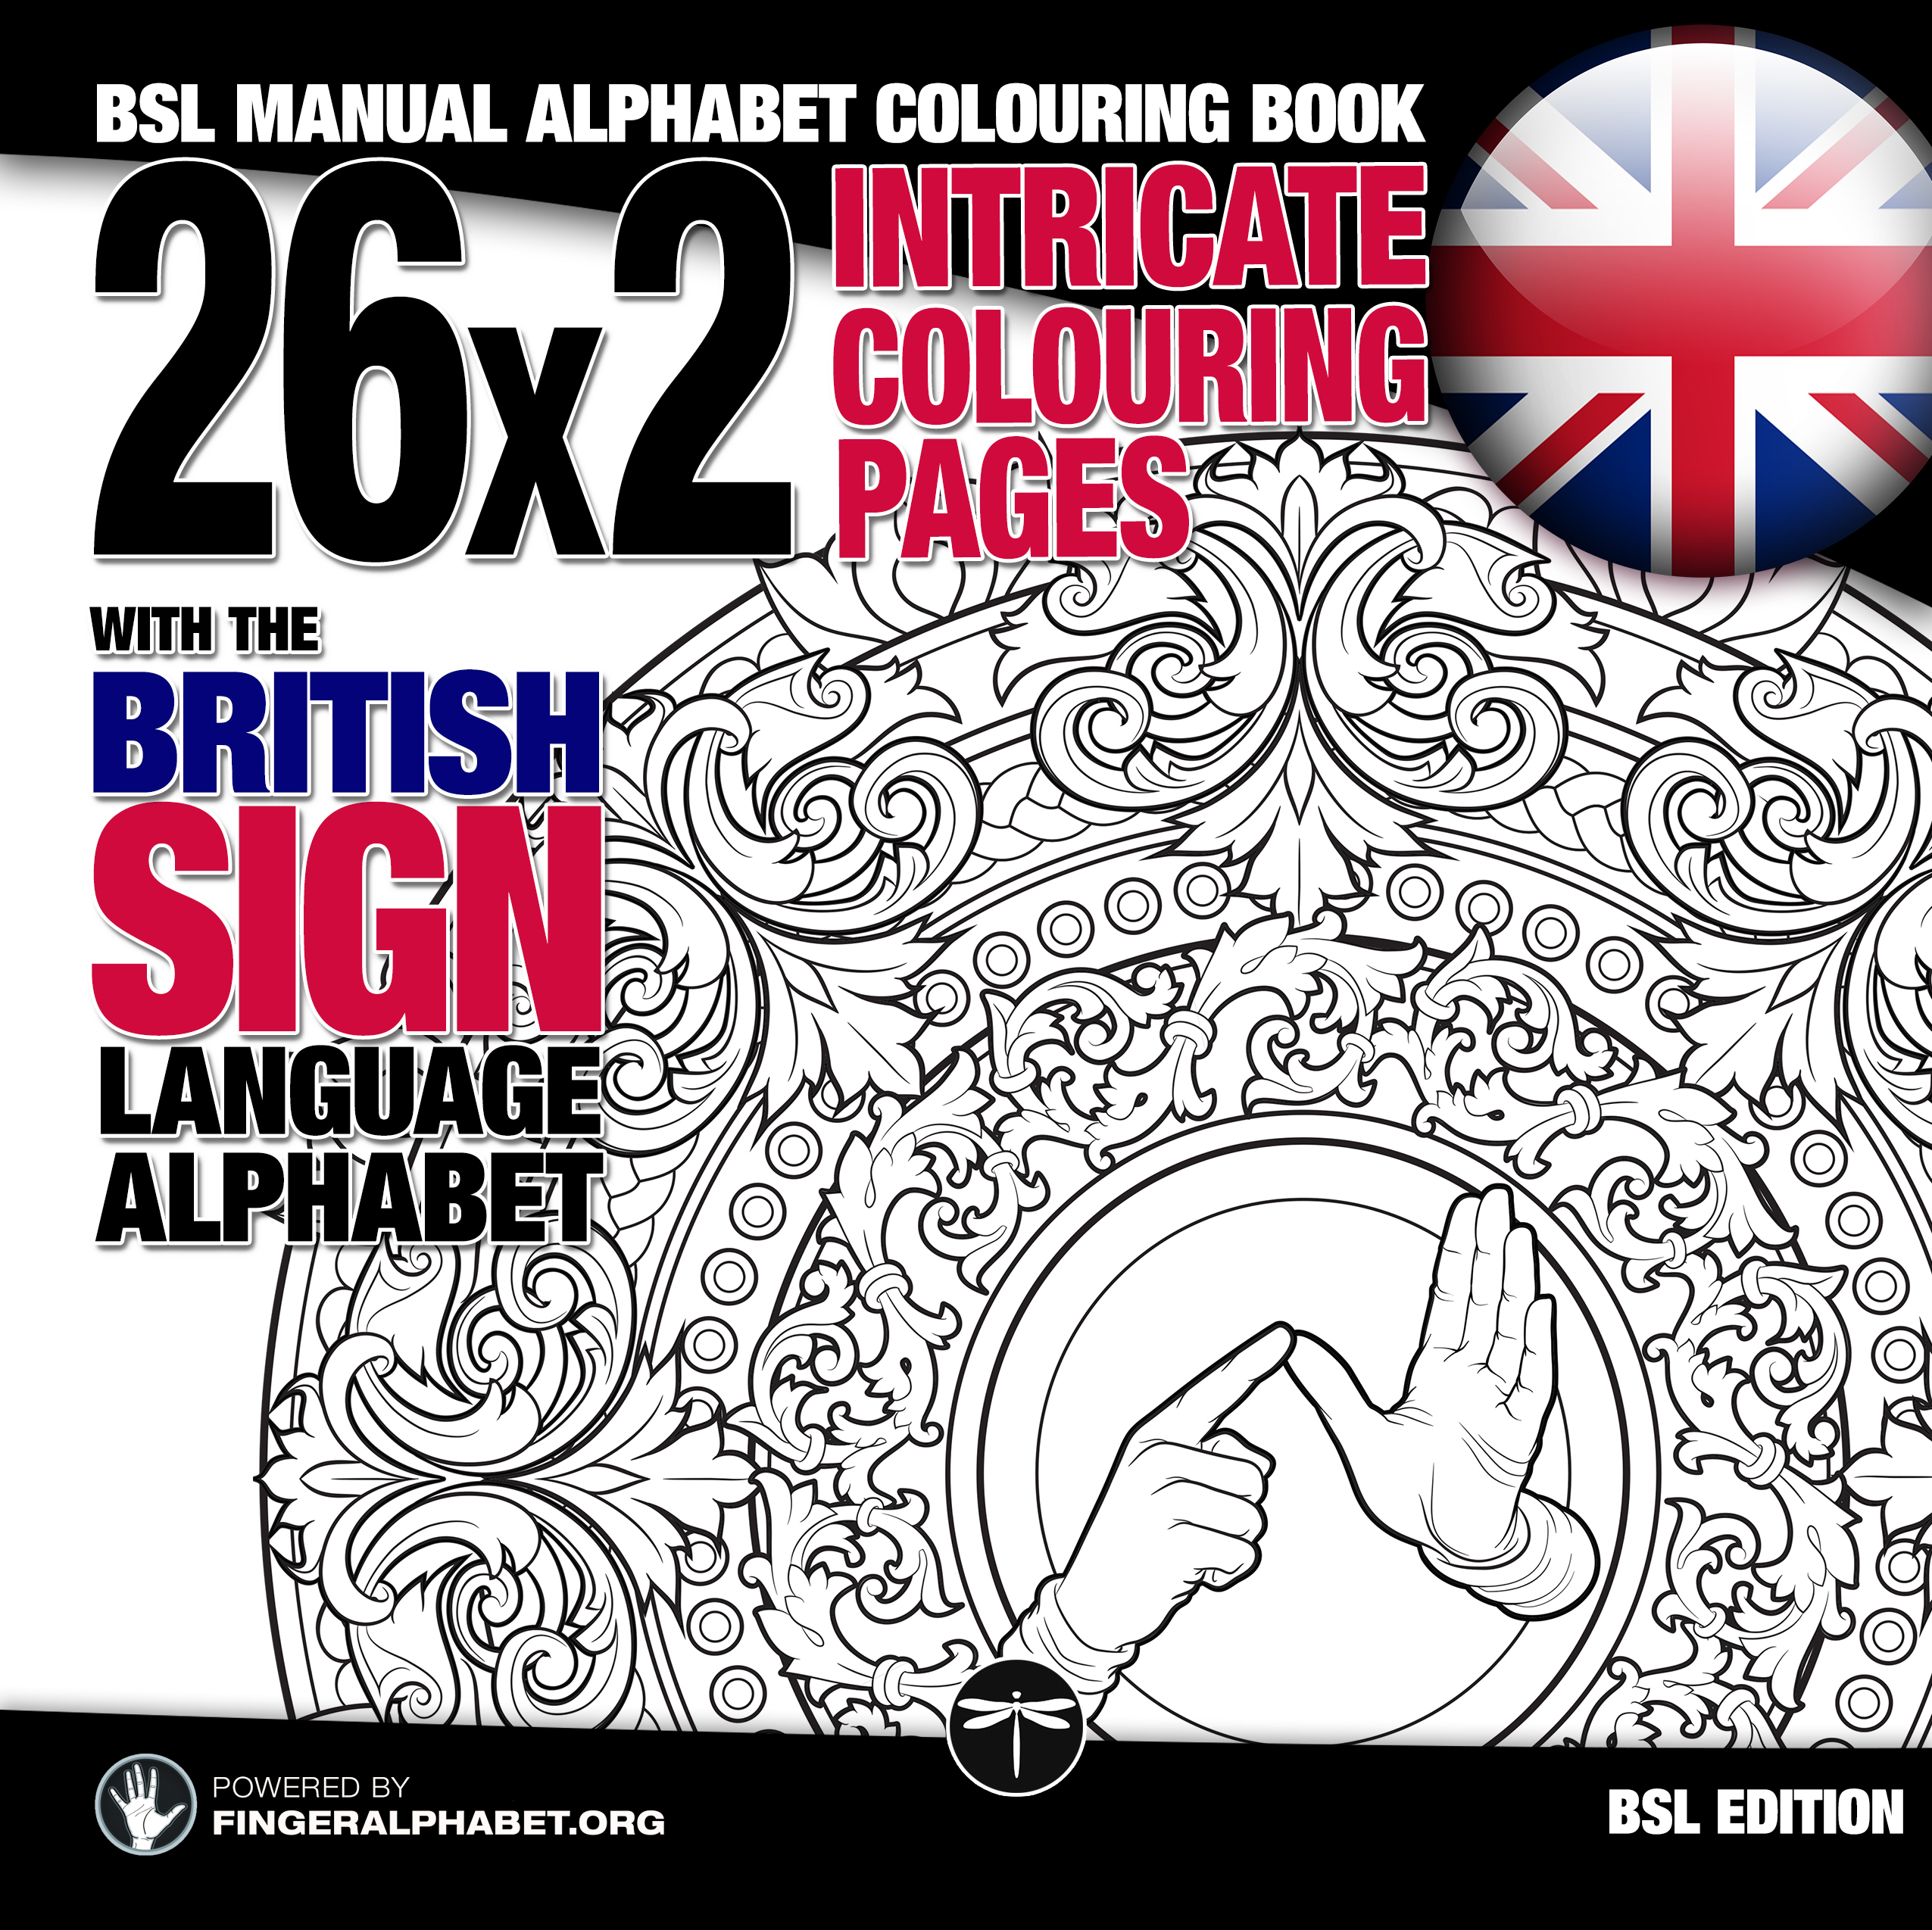 British Sign Language Alphabet Coloring book